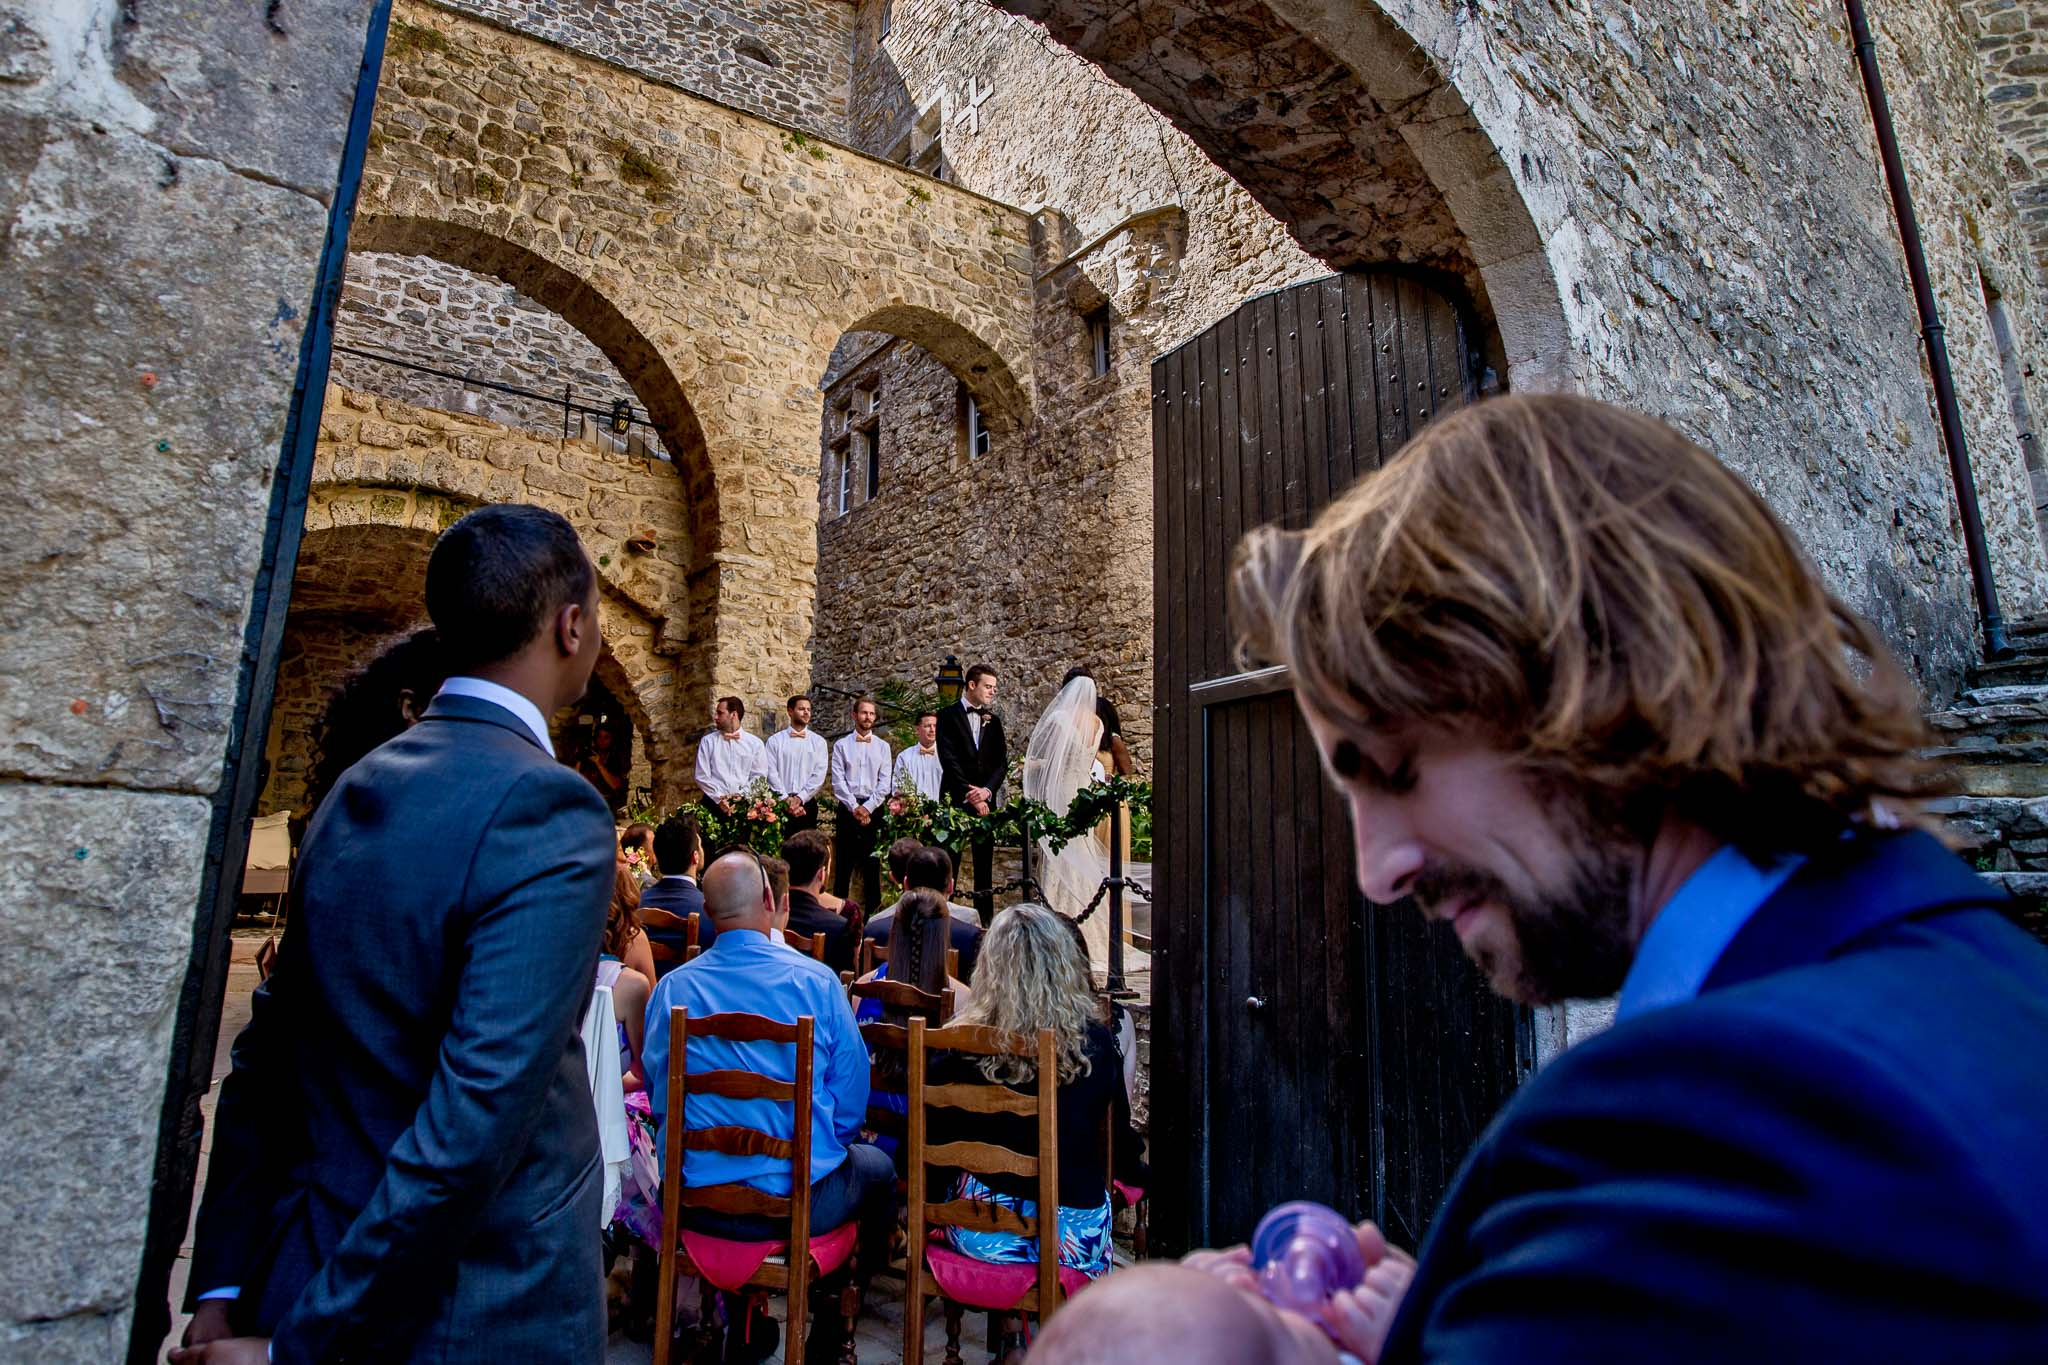 Father holding child during chateau wedding ceremony near Montpellier France